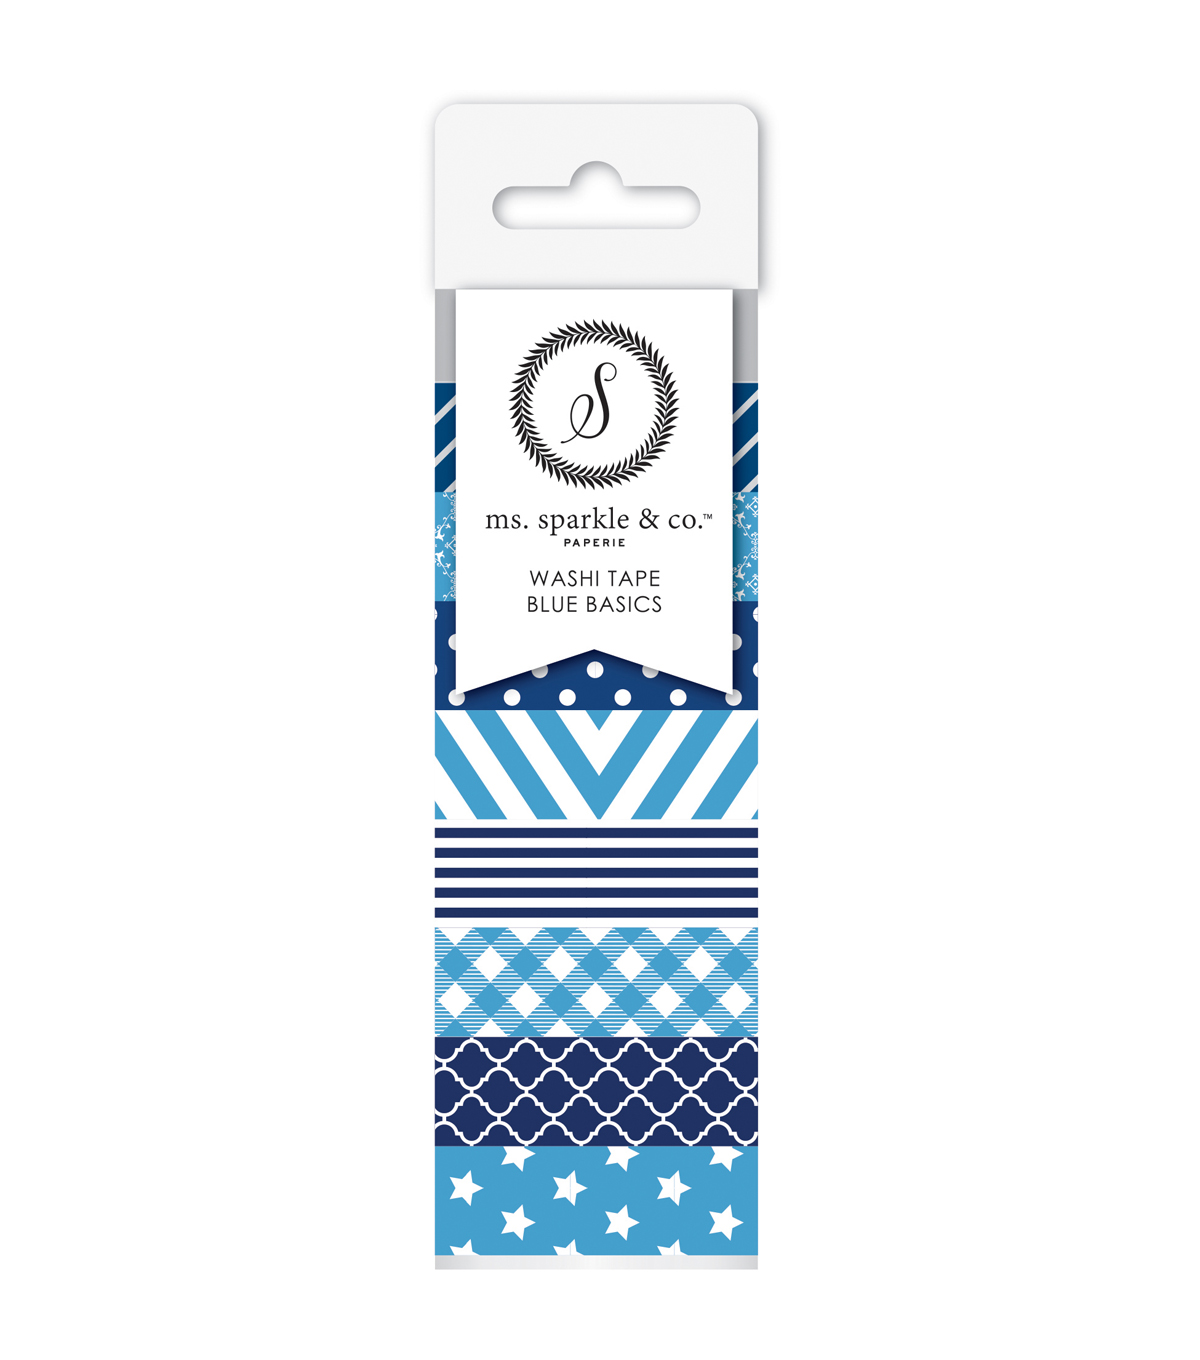 Ms. Sparkle & Co. 8 pk Washi Tapes 0.6 mmx10 yds-Blue Basics